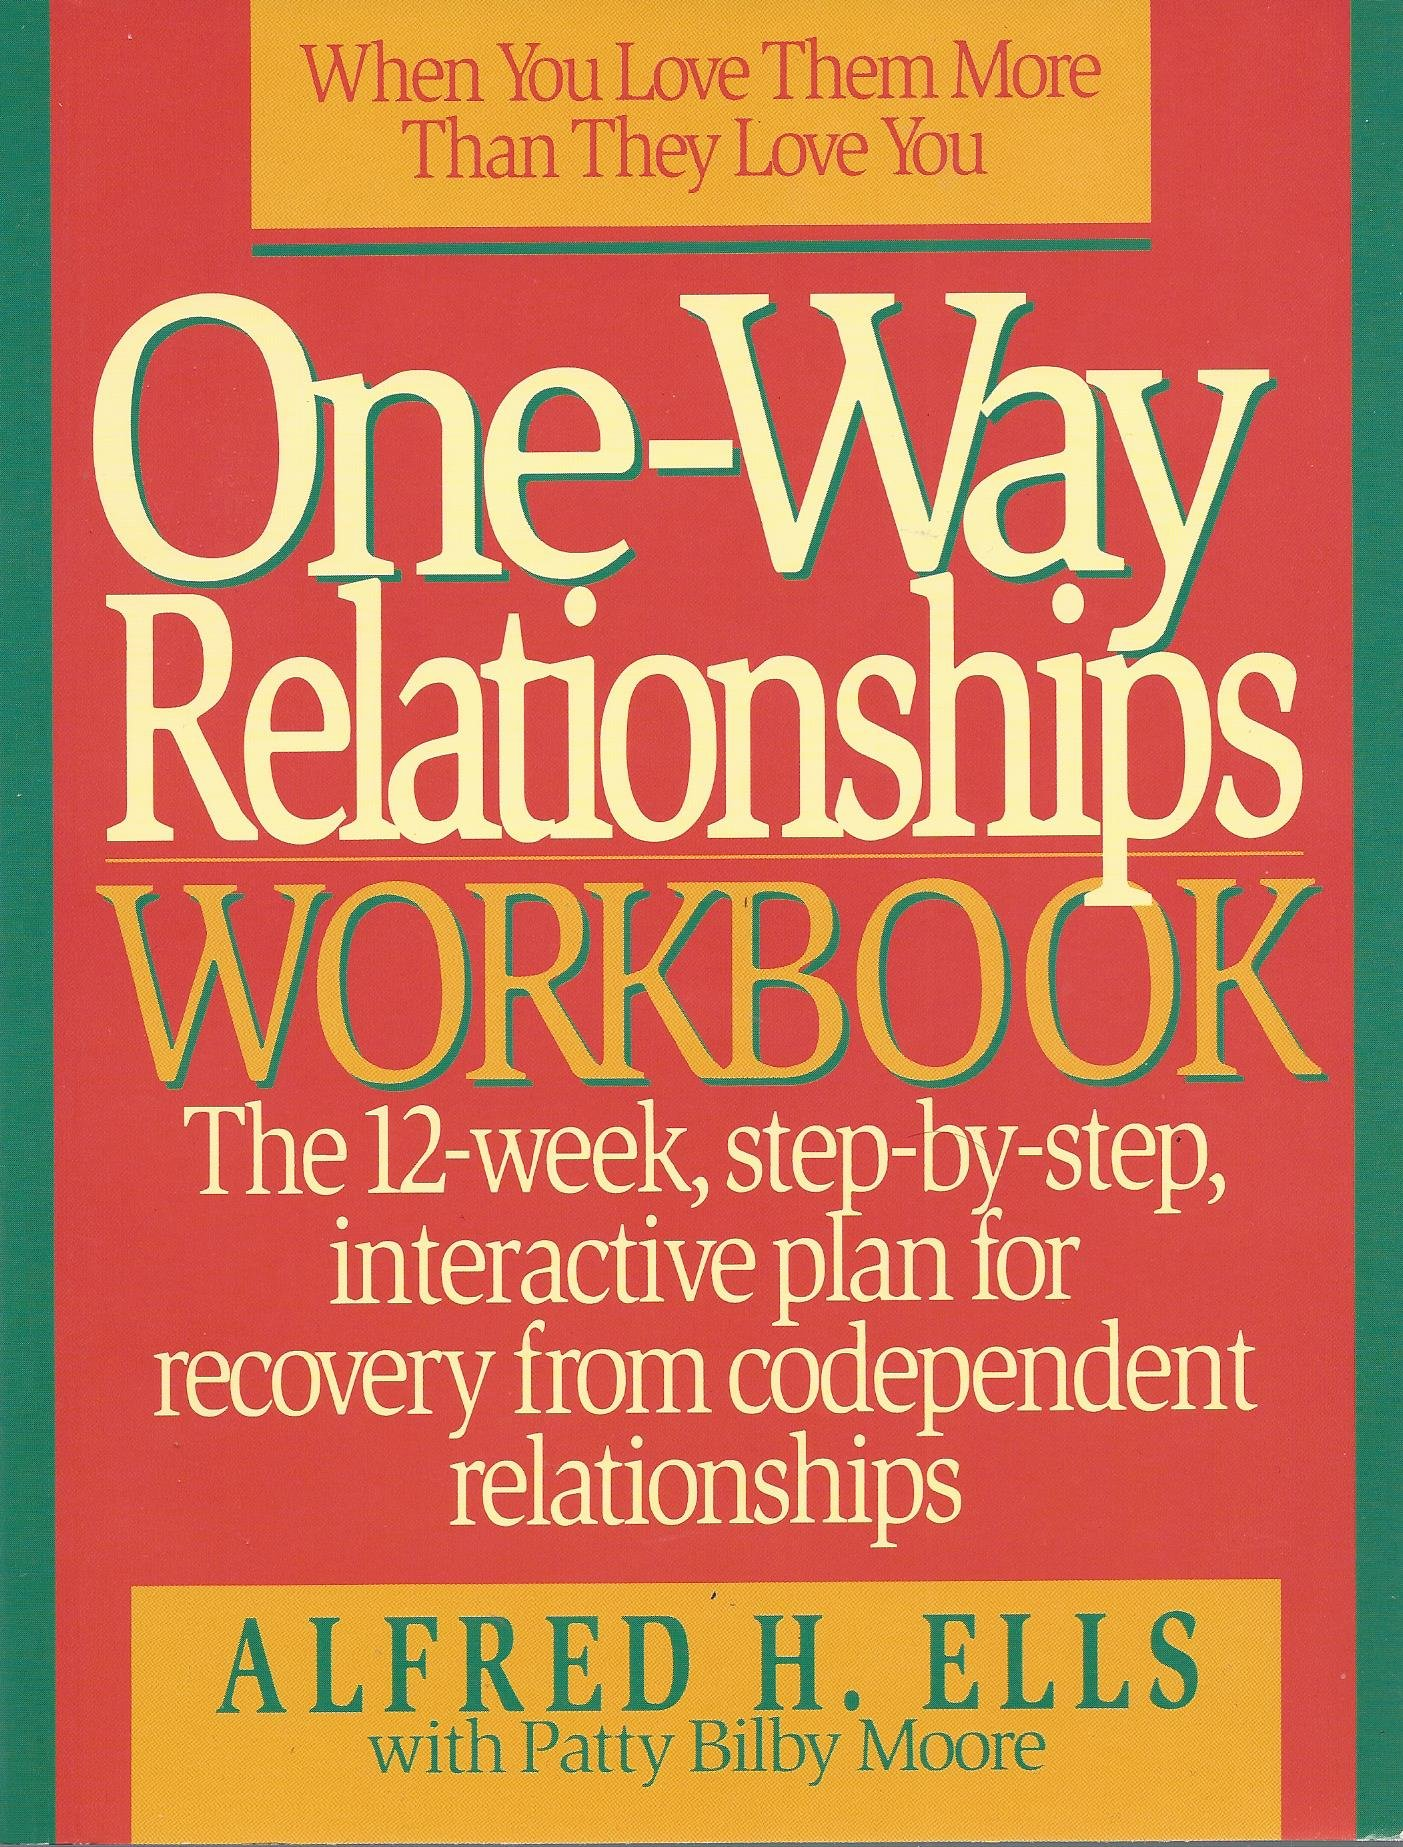 One-Way Relationships Workbook: The 12-Week, Step-By-Step, Interactive for  Recovery from Codependent Relationships: Alfred Ells: 9780840734129:  Amazon.com: ...